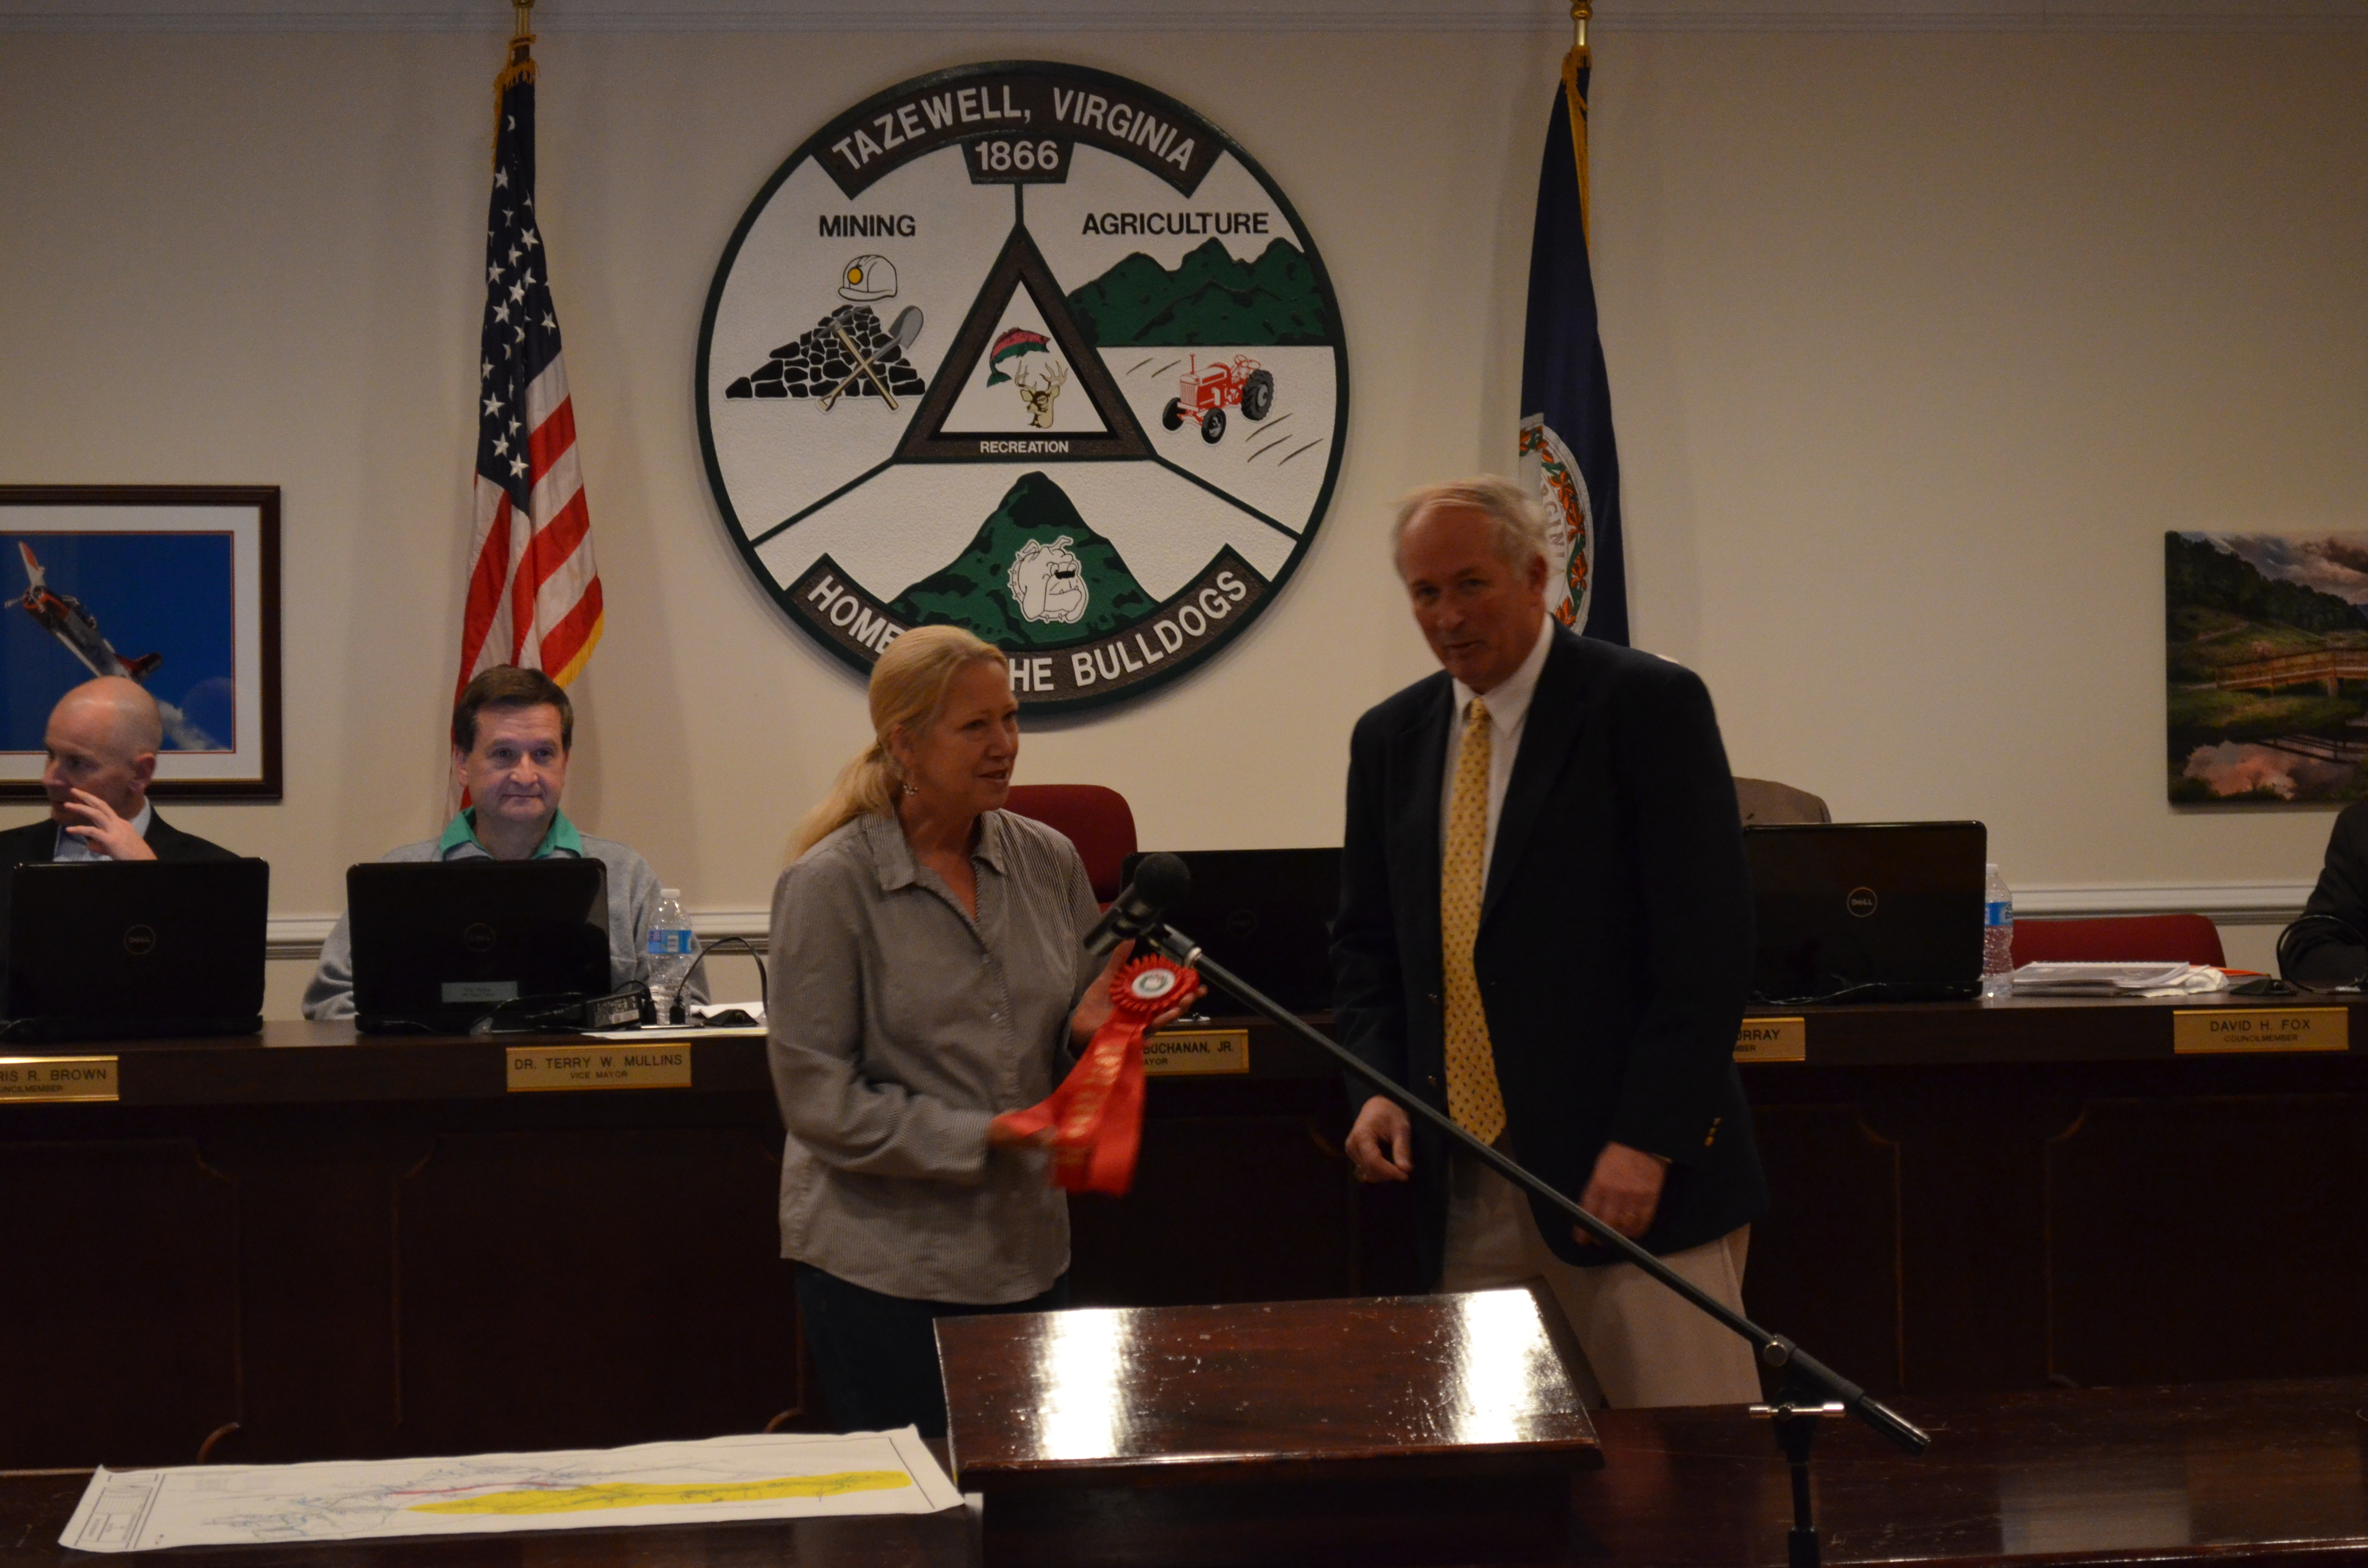 Mayor Buchanan presents Sharon Davis with 2nd place ribbon for the Sesquicentennial parade float.